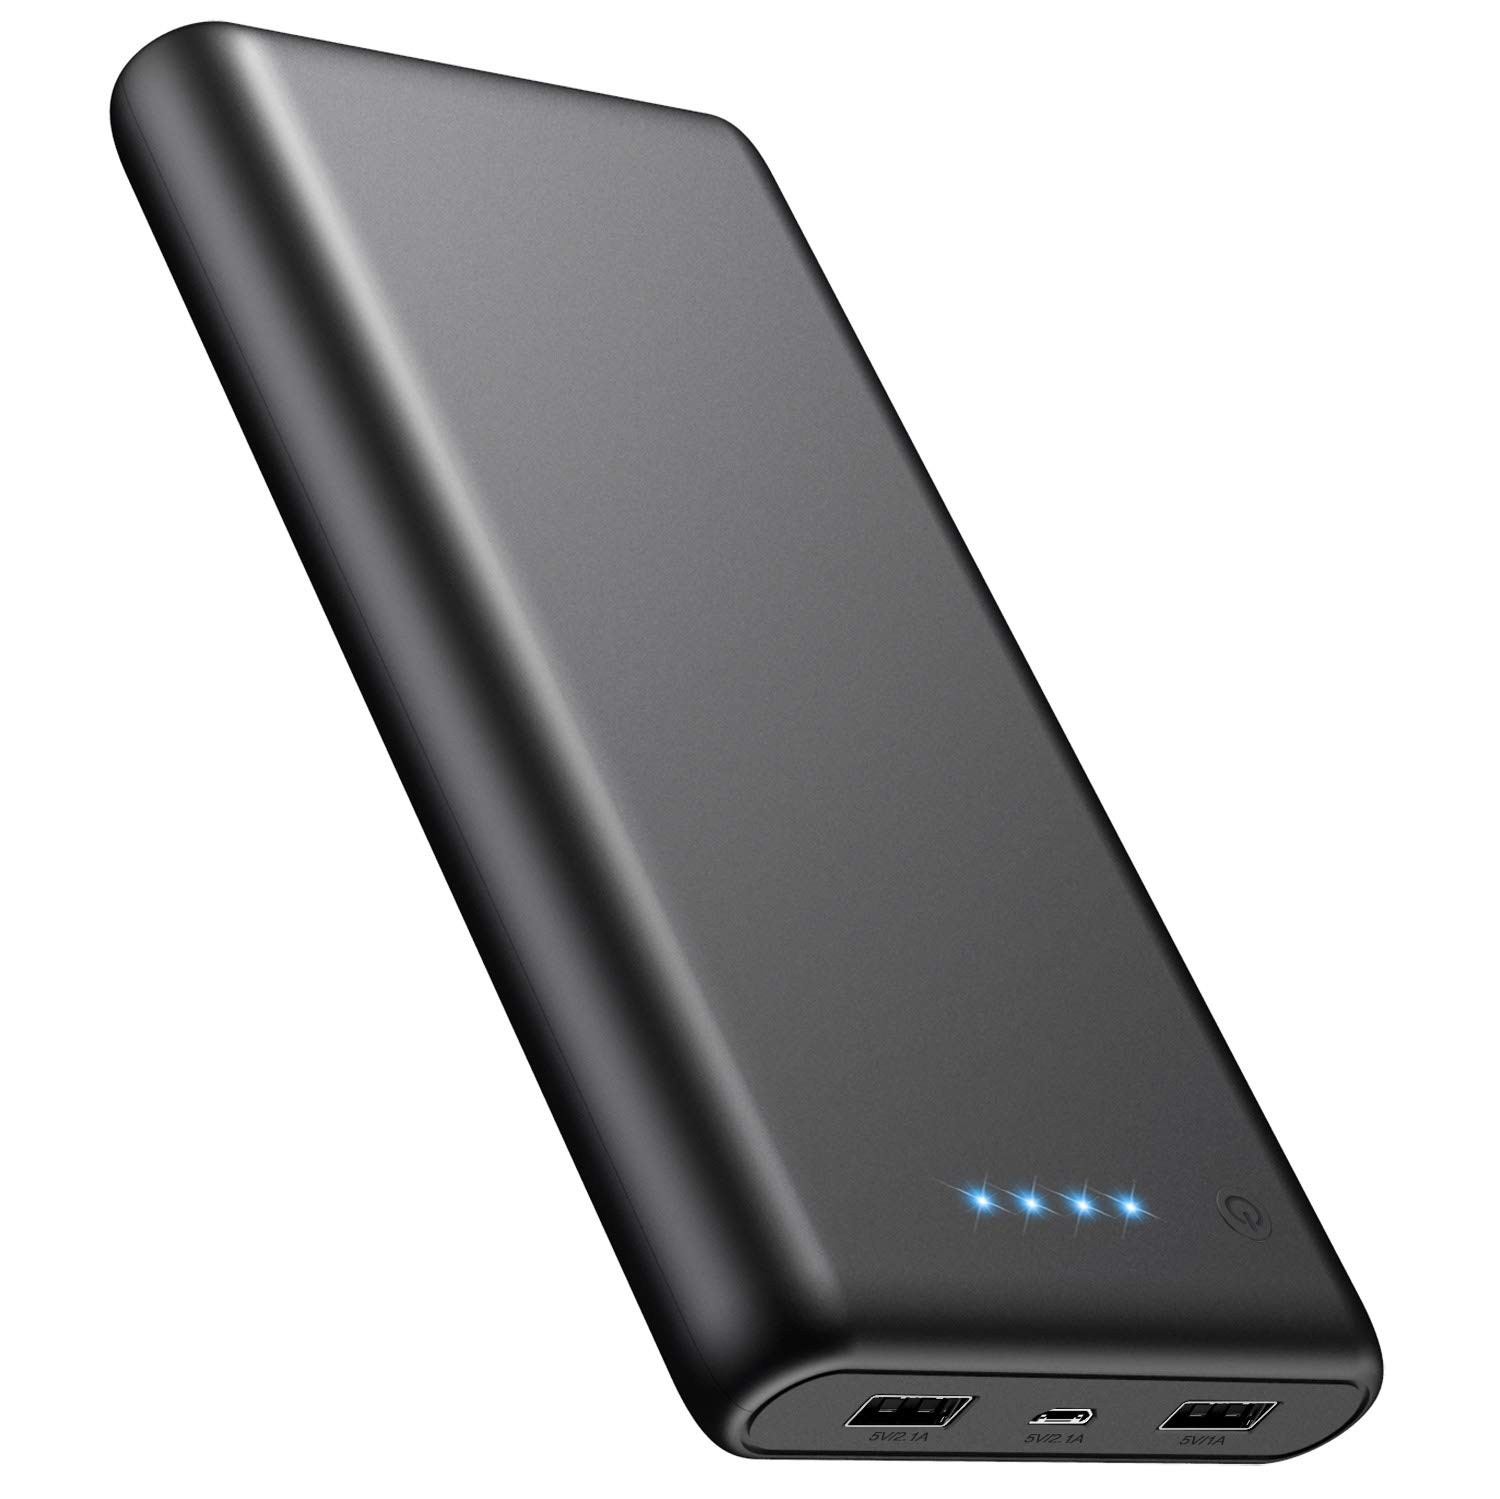 Portable Charger Power Bank 24800mAh High Capacity External Battery Smaller Size Lighter Weight Backup Battery Compatible with Smart Phone, Android Phone, Tablet and More